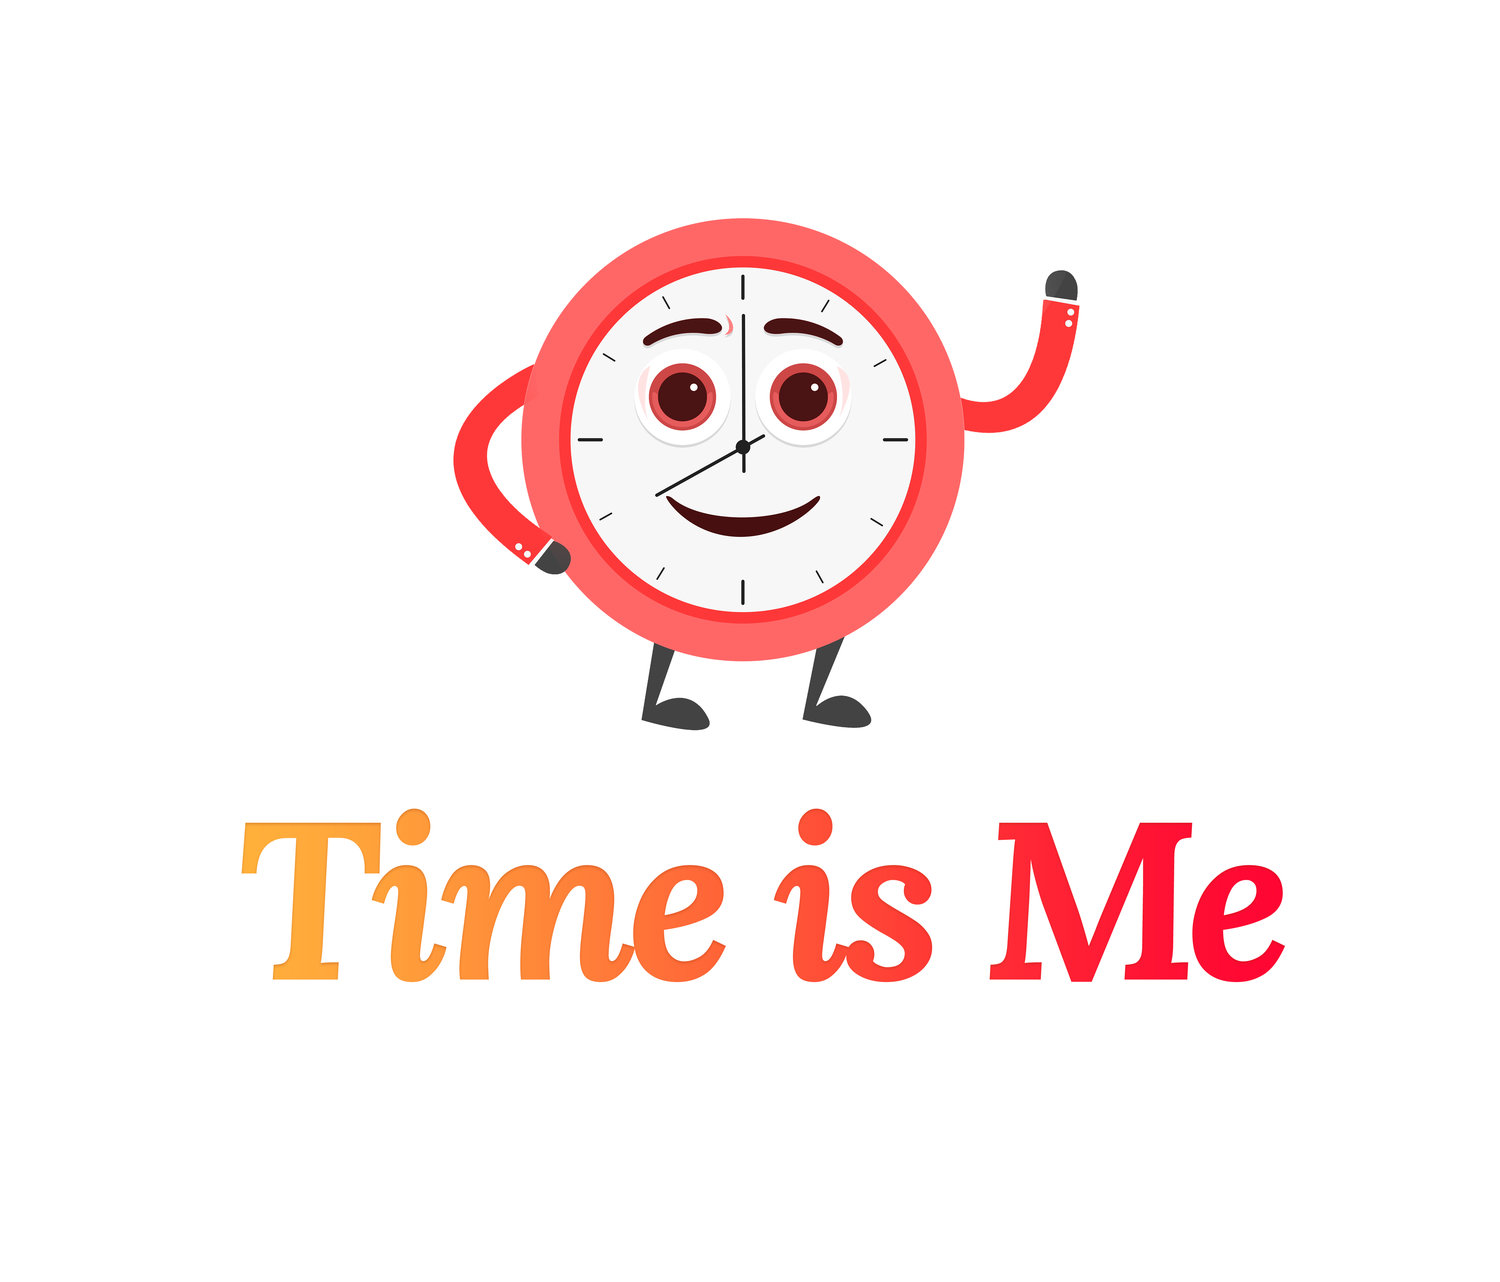 Time is Me